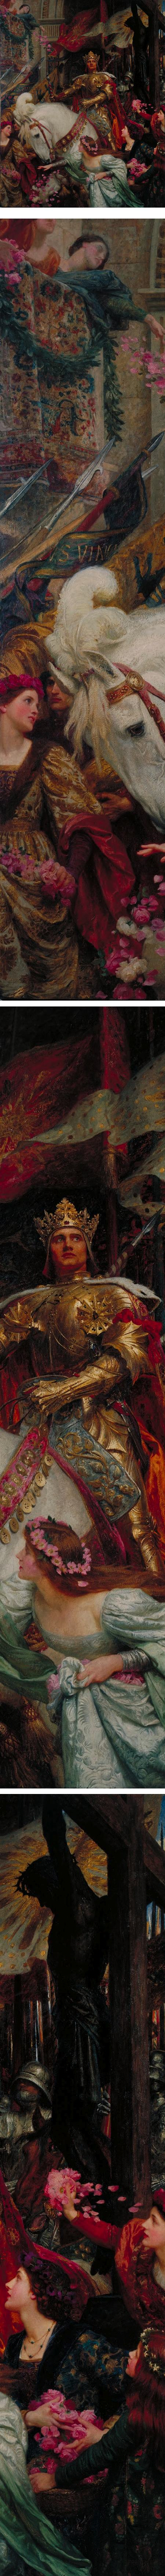 The Two Crowns, Sir Frank Dicksee